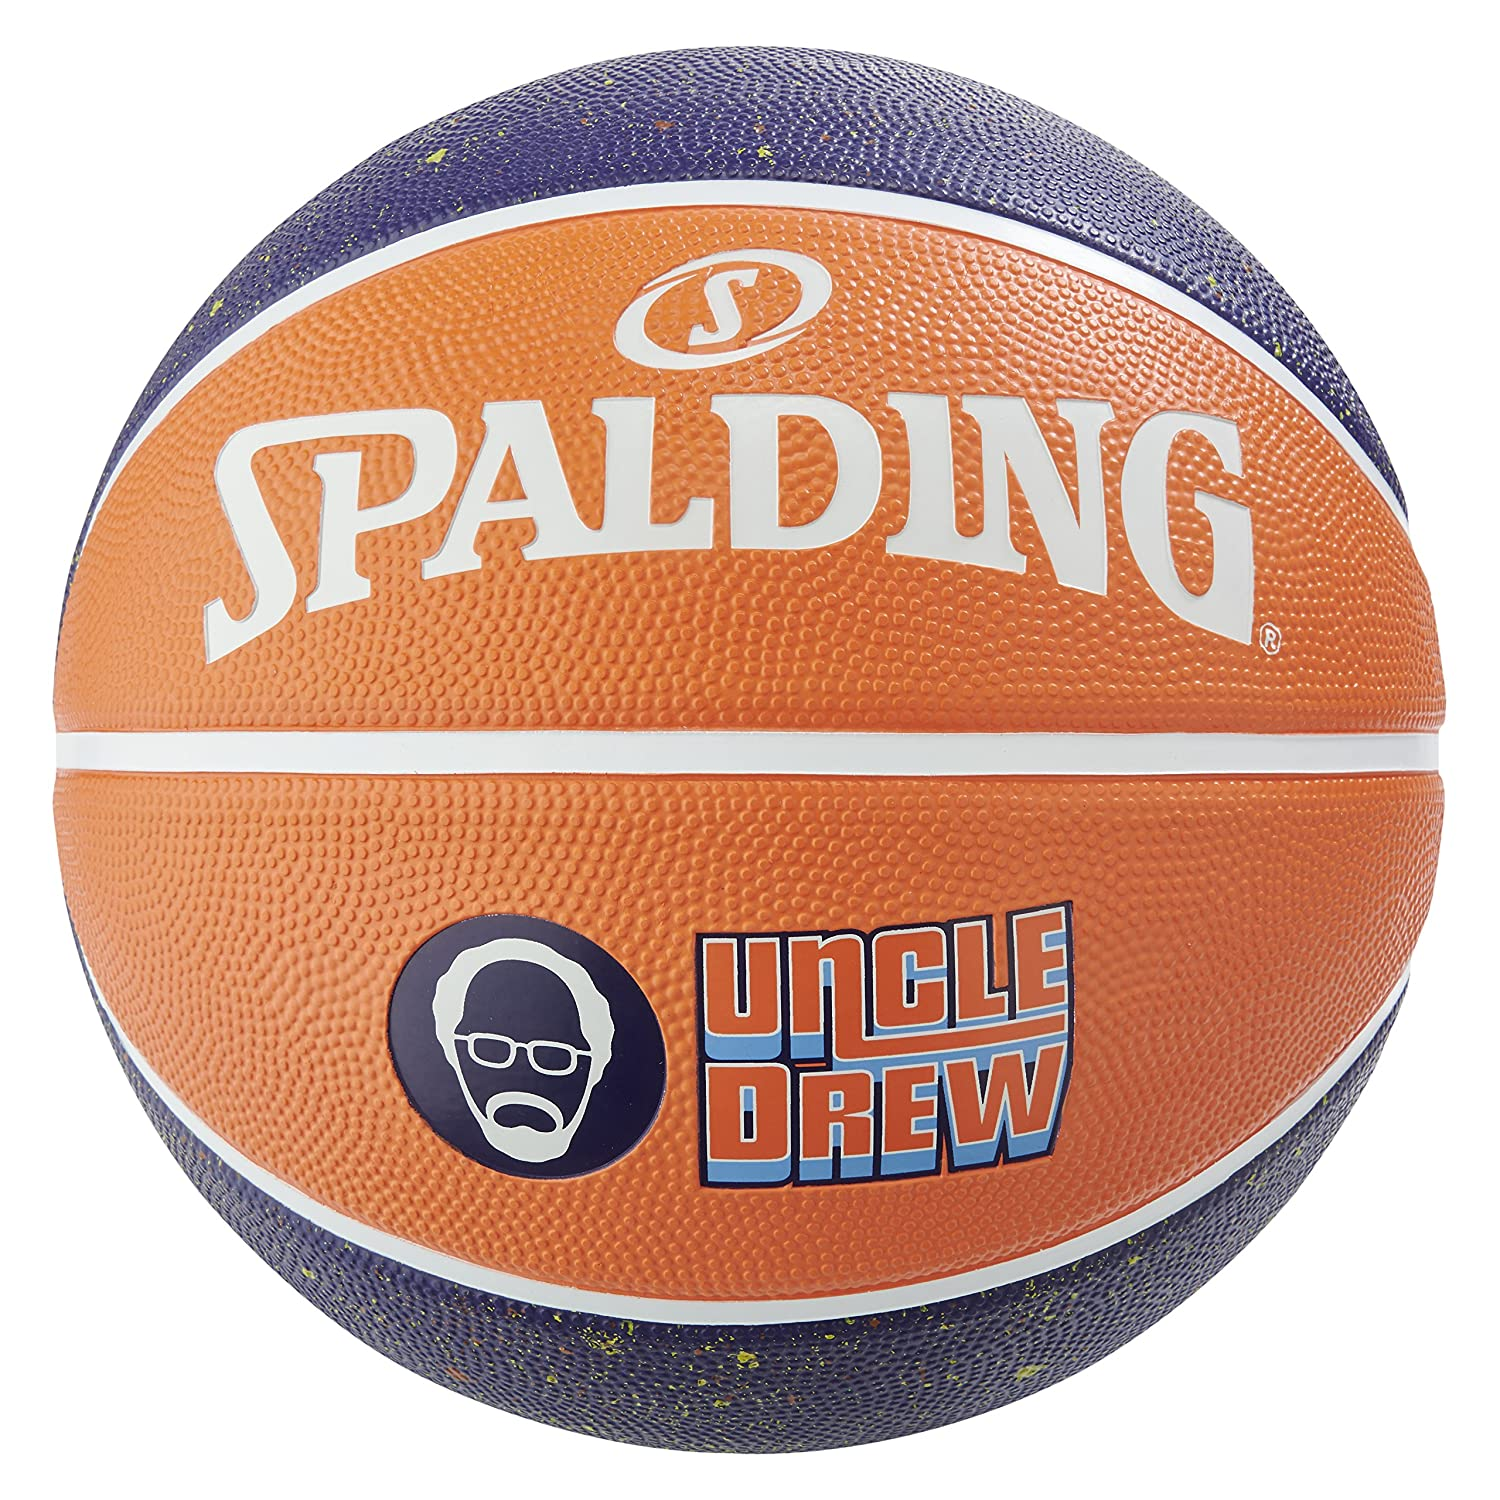 Spalding The Legend - Balón de Baloncesto, diseño de Drew: Amazon ...